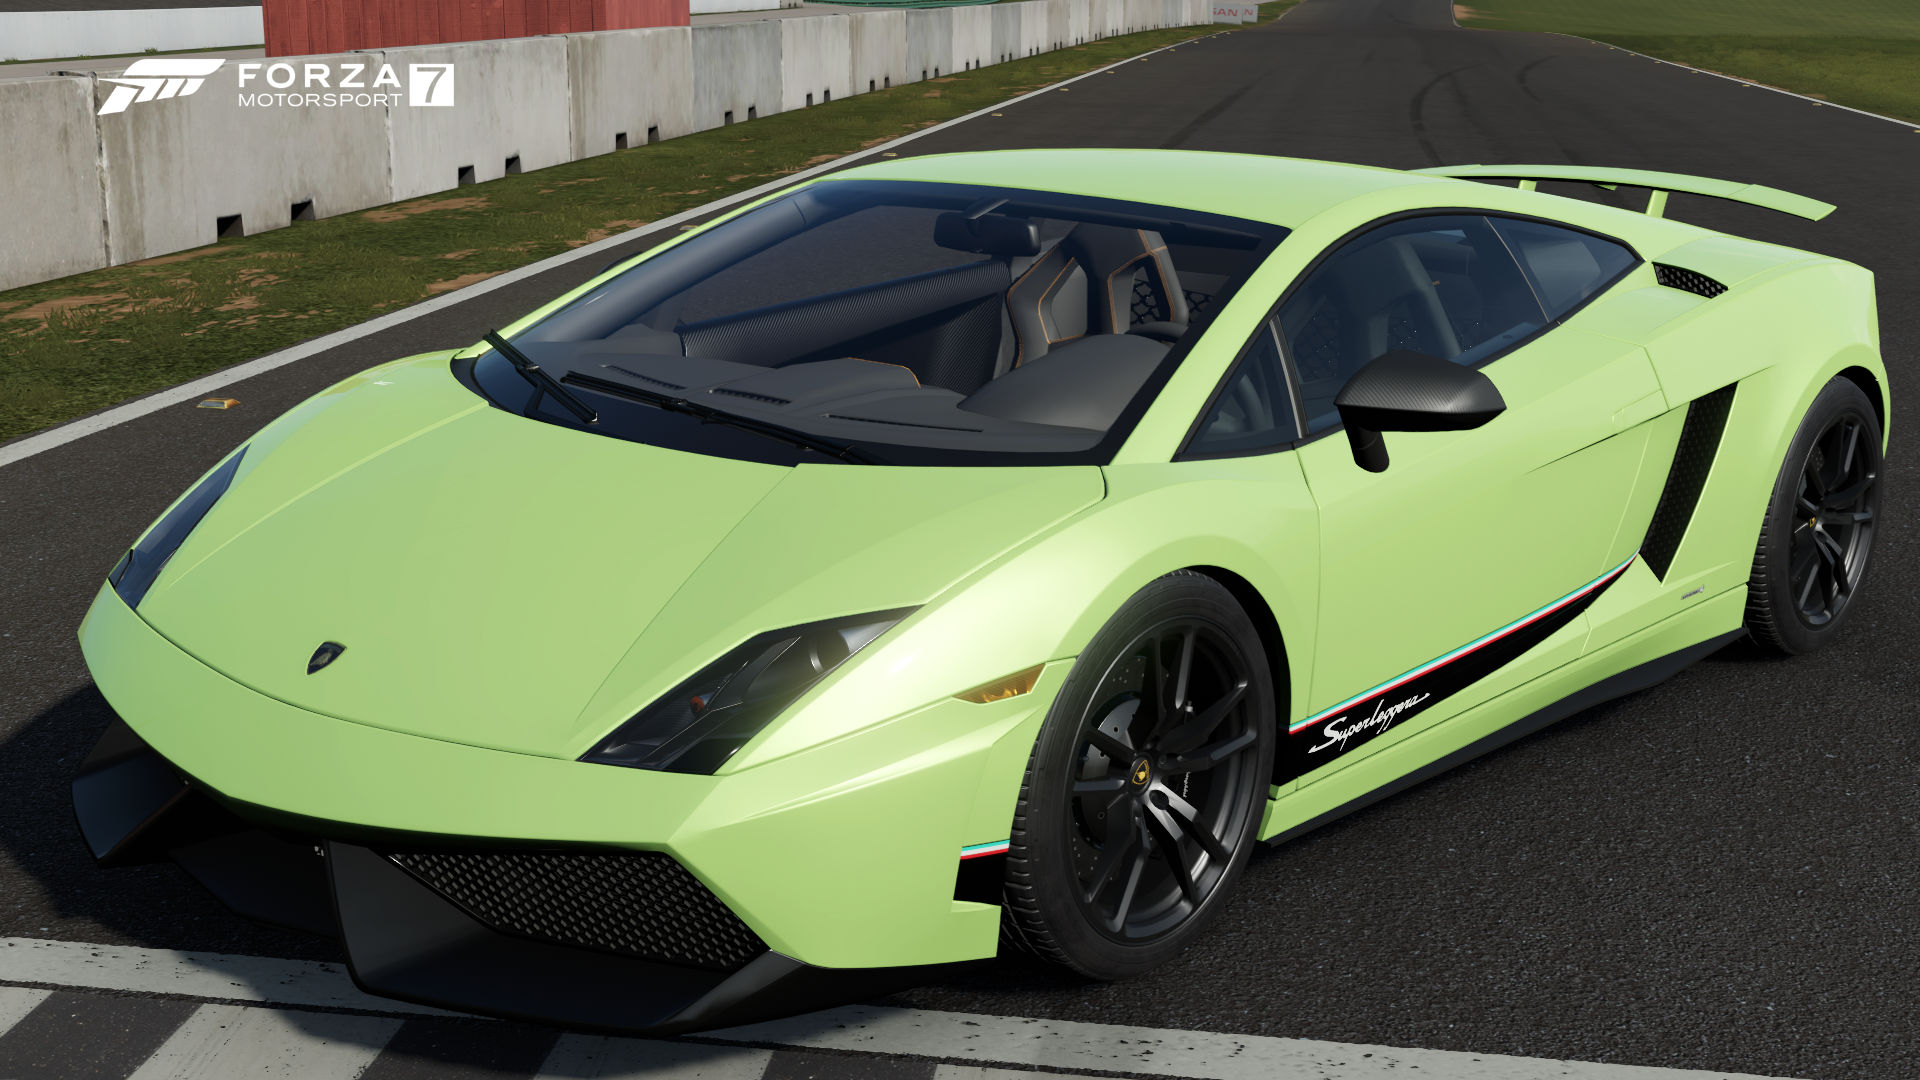 The 2011 Lamborghini Gallardo LP 570 4 Superleggera In Forza Motorsport 7